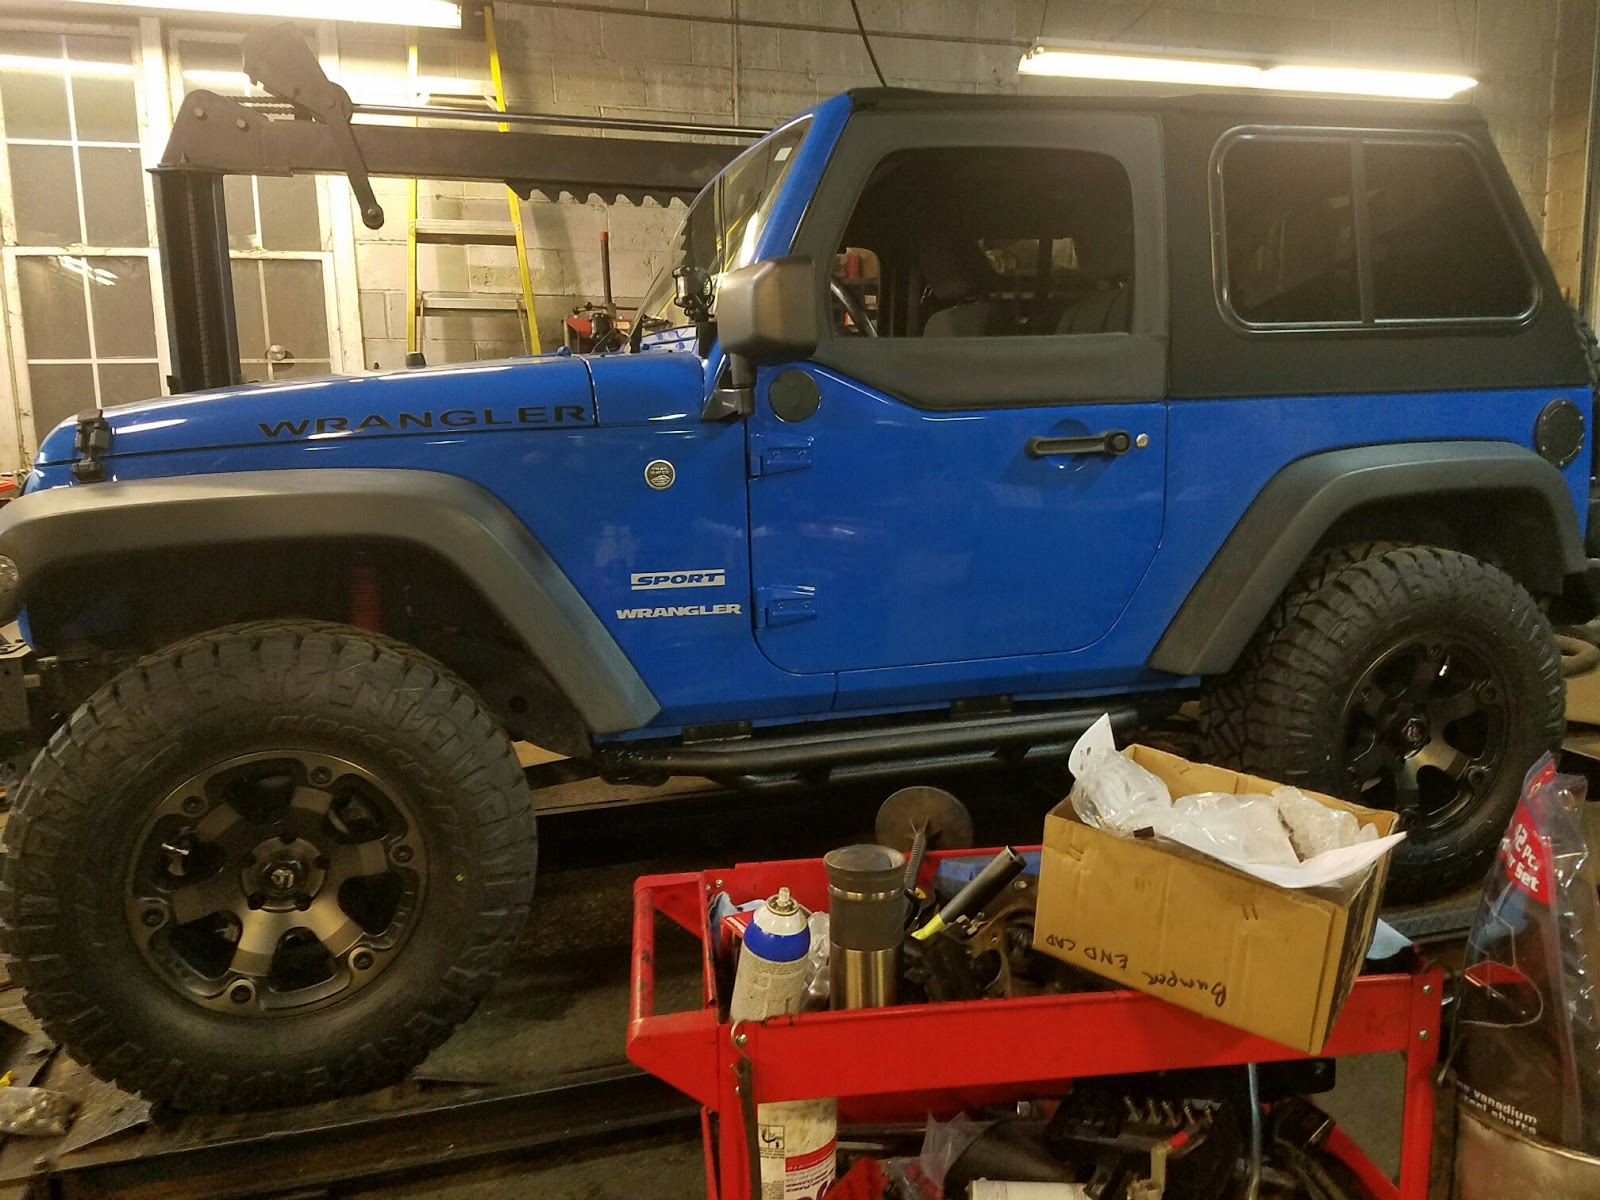 randomly learned: besttop trektop pro on 2 door jeep jk